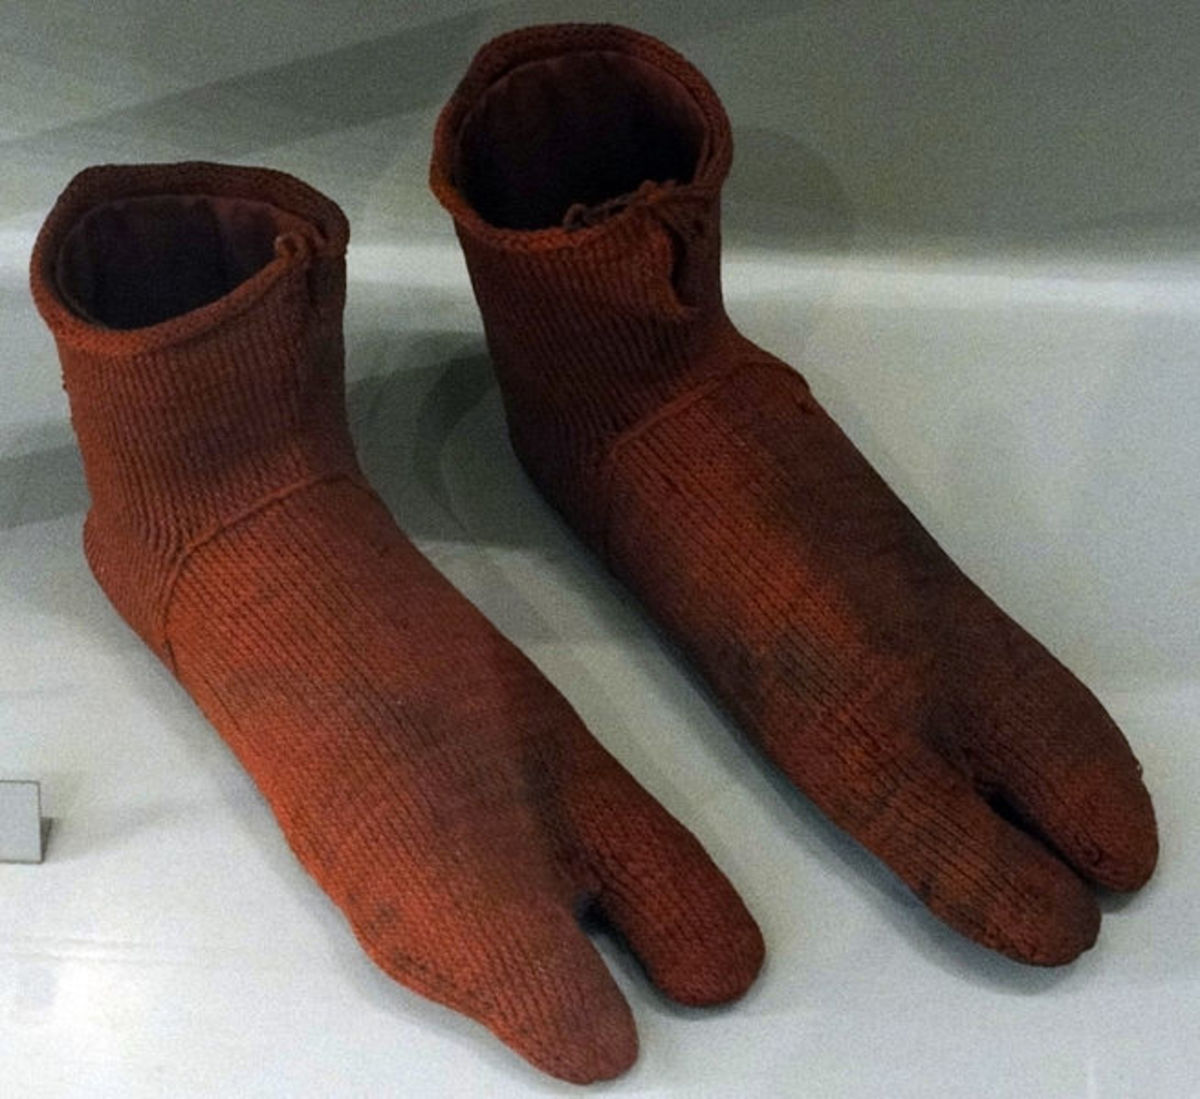 Earliest known surviving cloth socks from 300 ---500   a.d.   On display at the Victoria and Albert Museum in London, England.